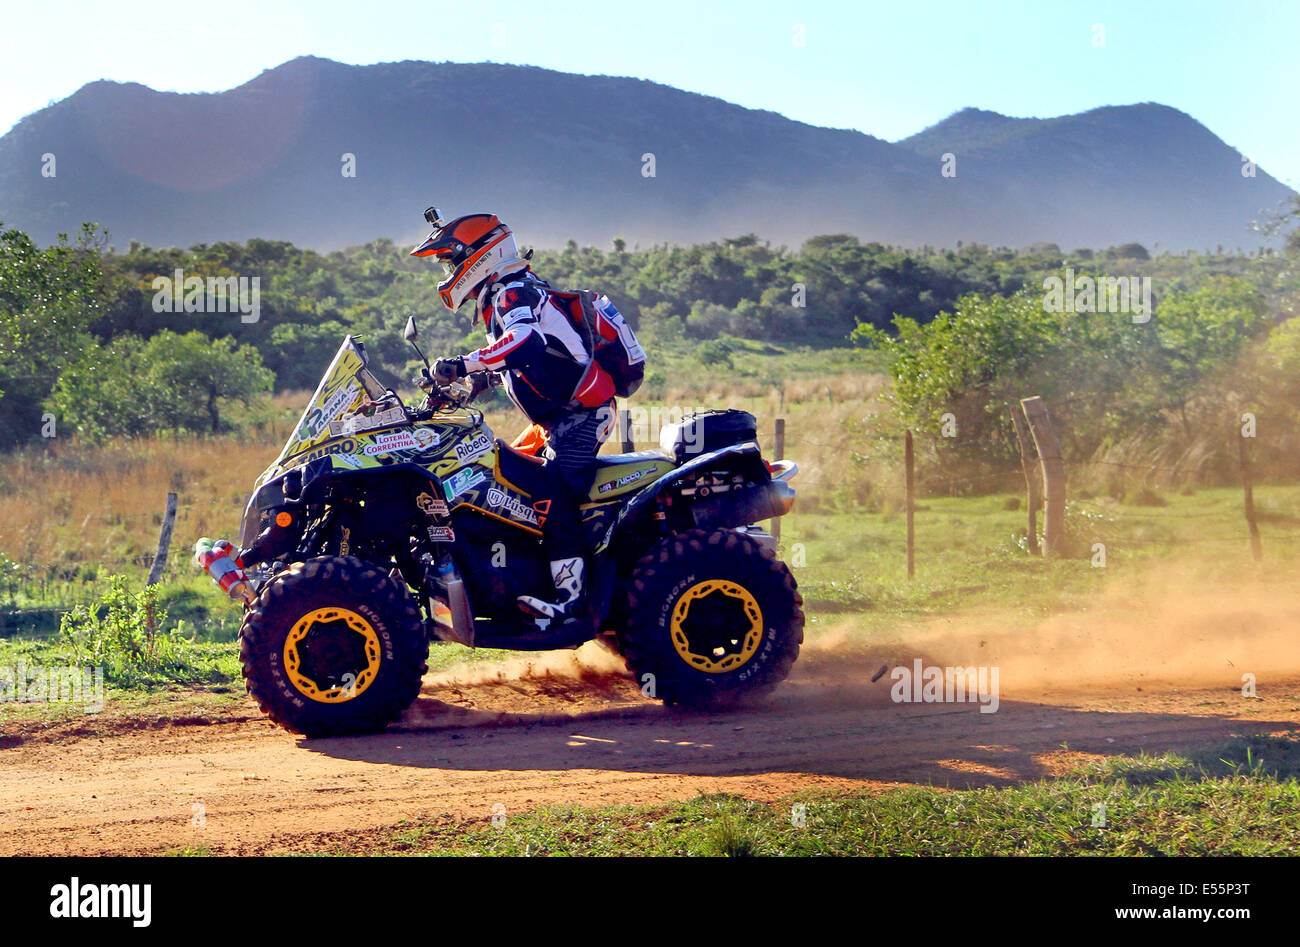 Paraguari, Paraguay. 21st July, 2014. A pilot takes part in the fist leg of the Guarani Challenge of the Dakar Series, - Stock Image